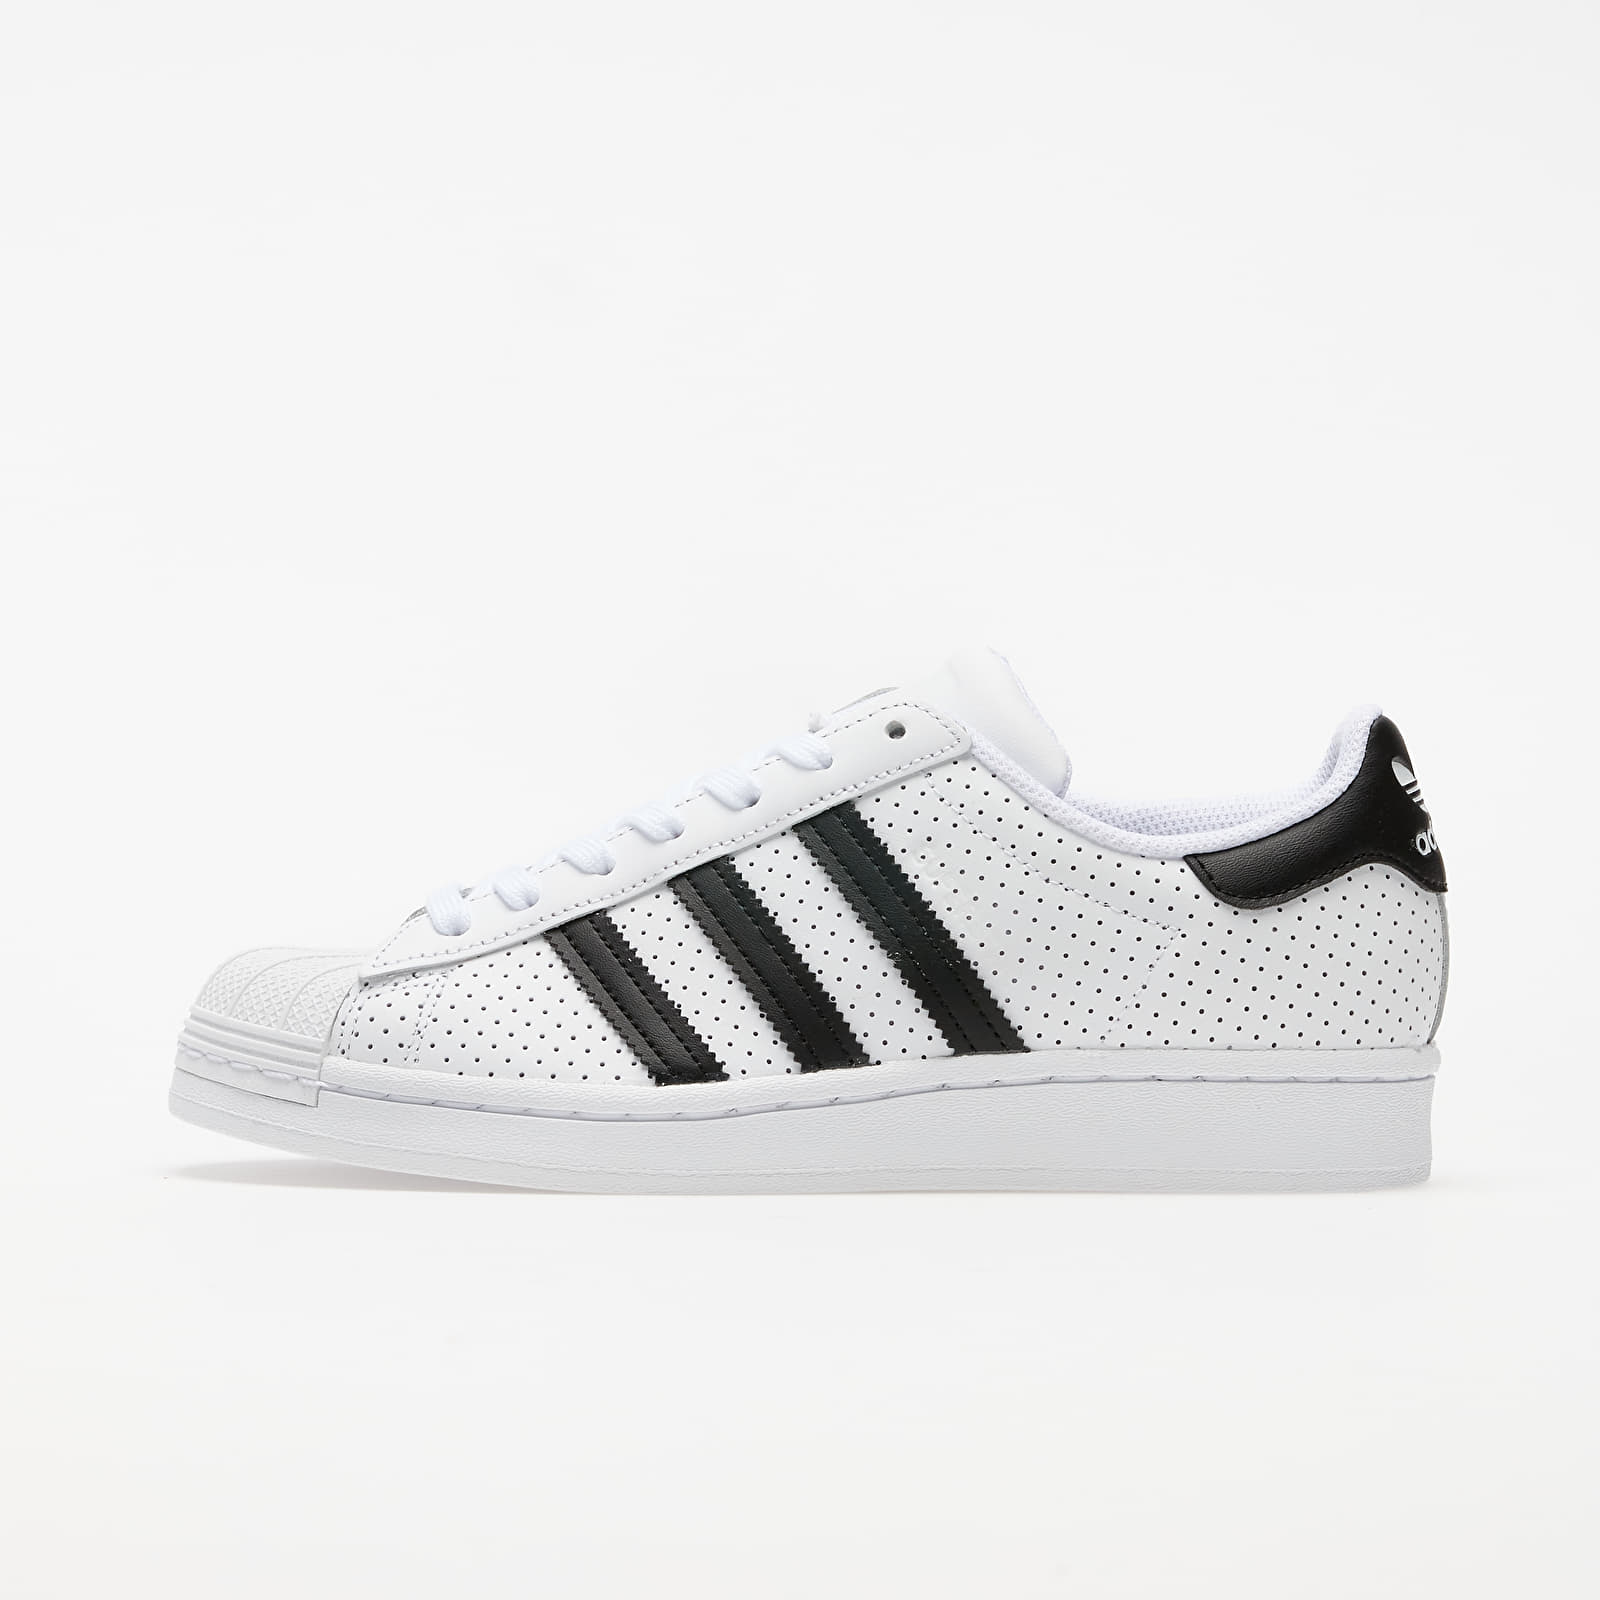 Women's shoes adidas Superstar W Ftw White/ Core Black/ Ftw White